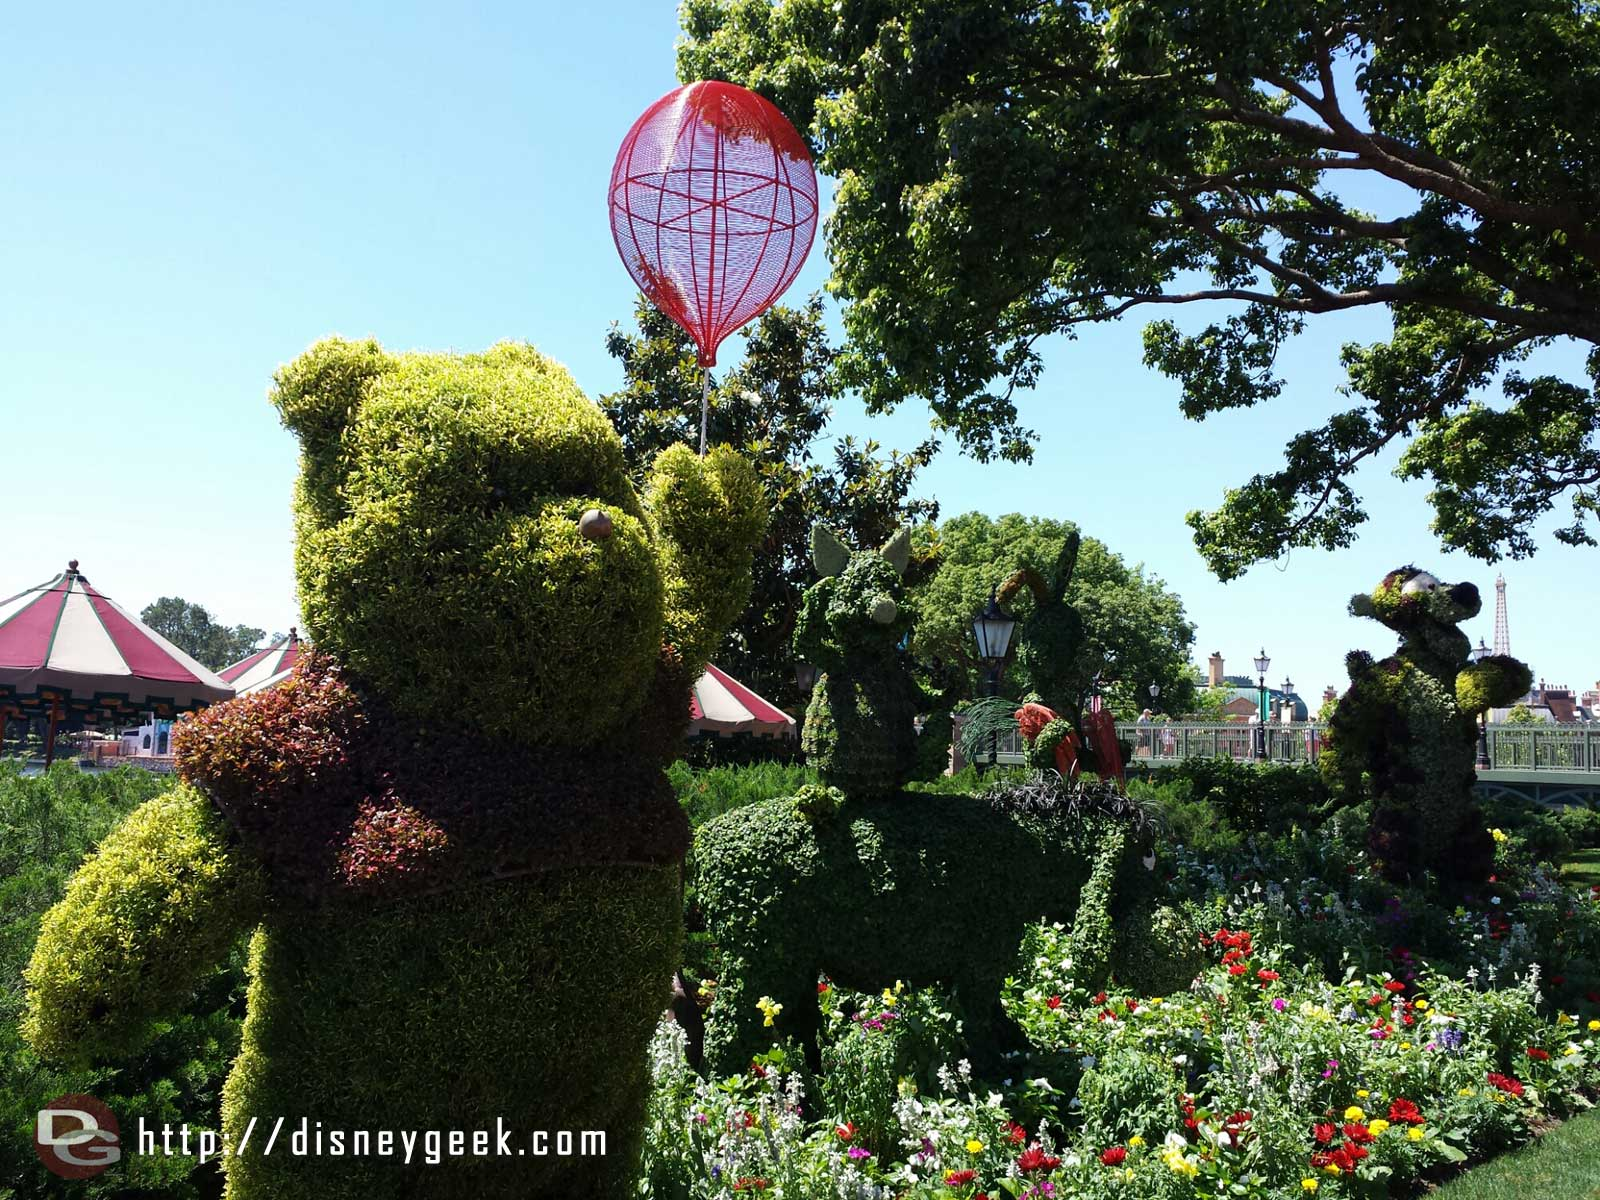 The Winnie the Pooh gang in the UK    –  Epcot International Flower & Garden Festival